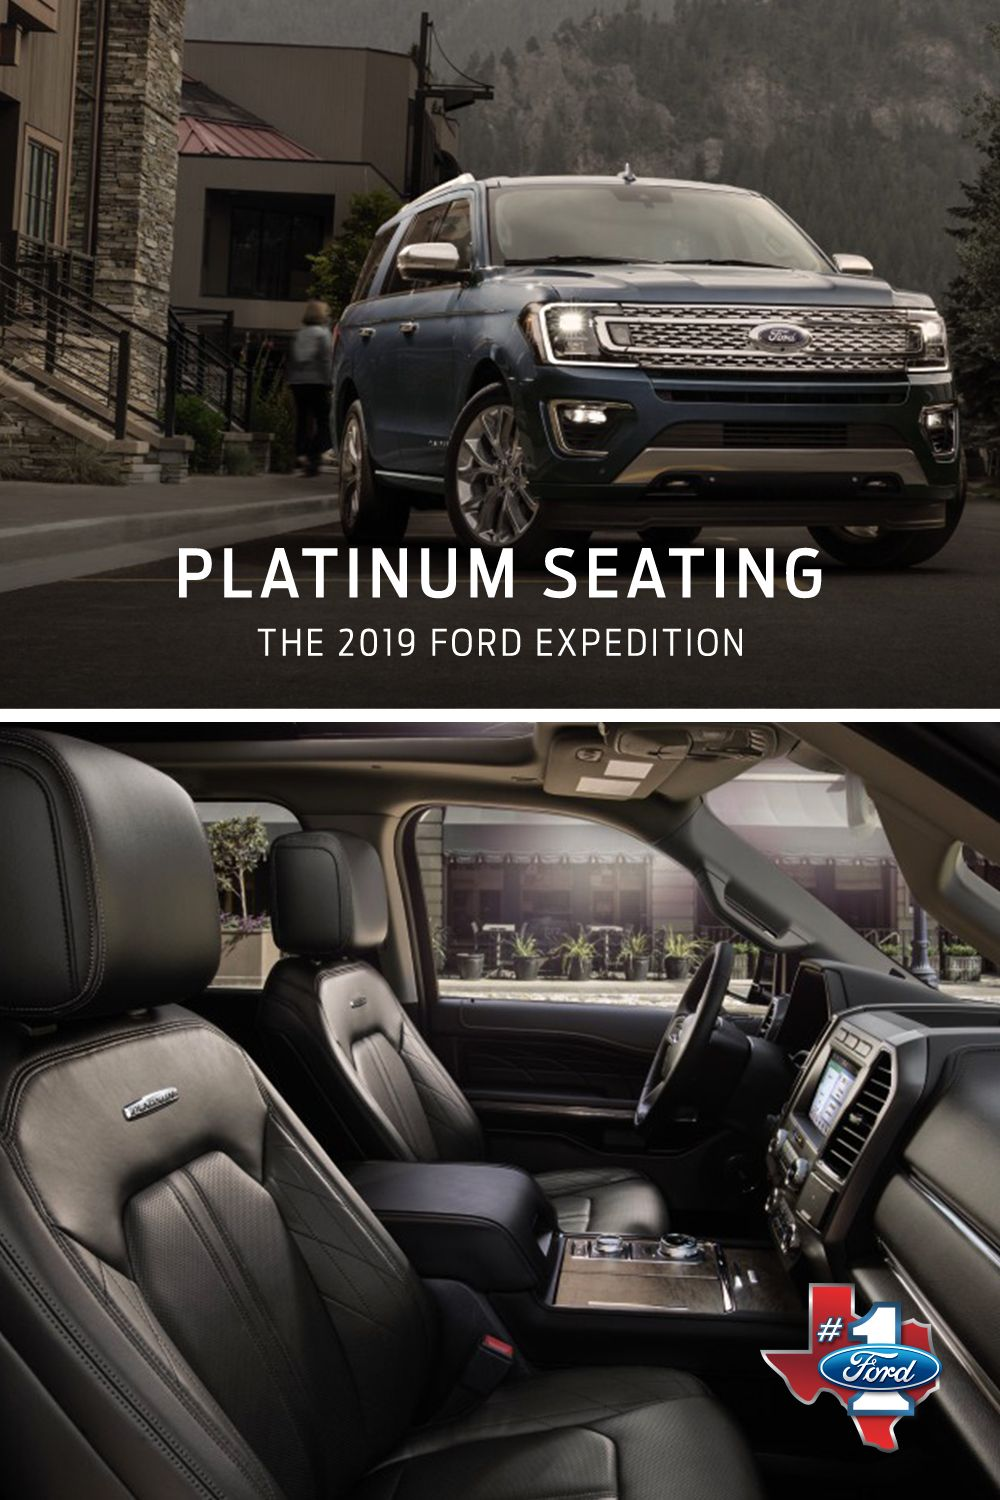 Look At Those Leather Trimmed Seats Of The 2019 Ford Expedition